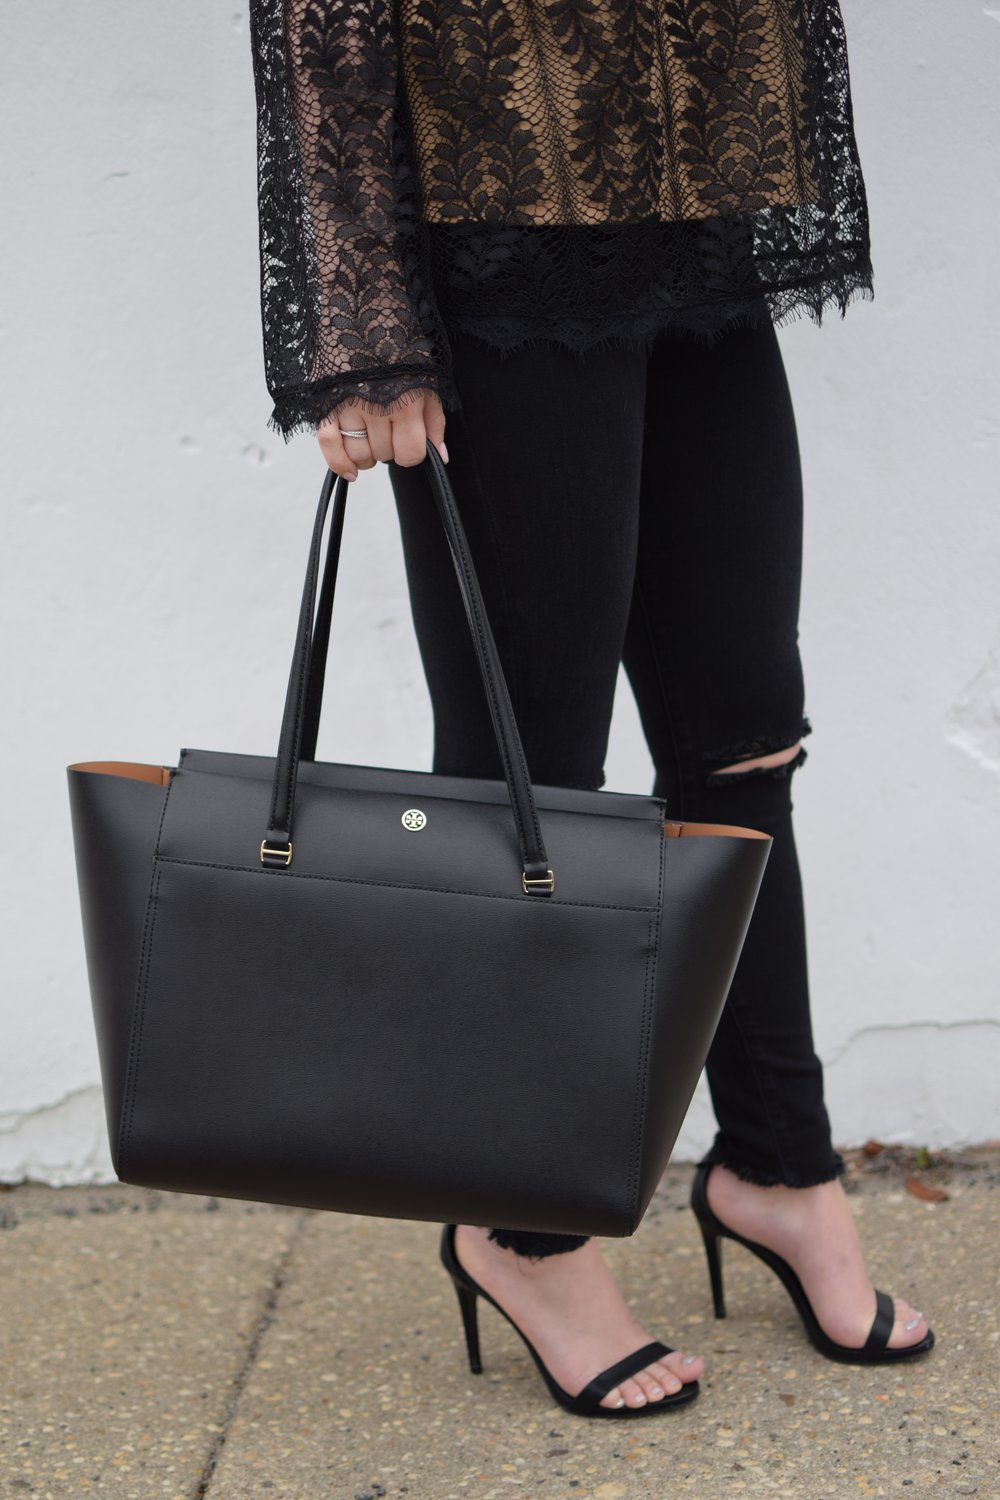 date night outfit idea / tory burch bag / black lace top